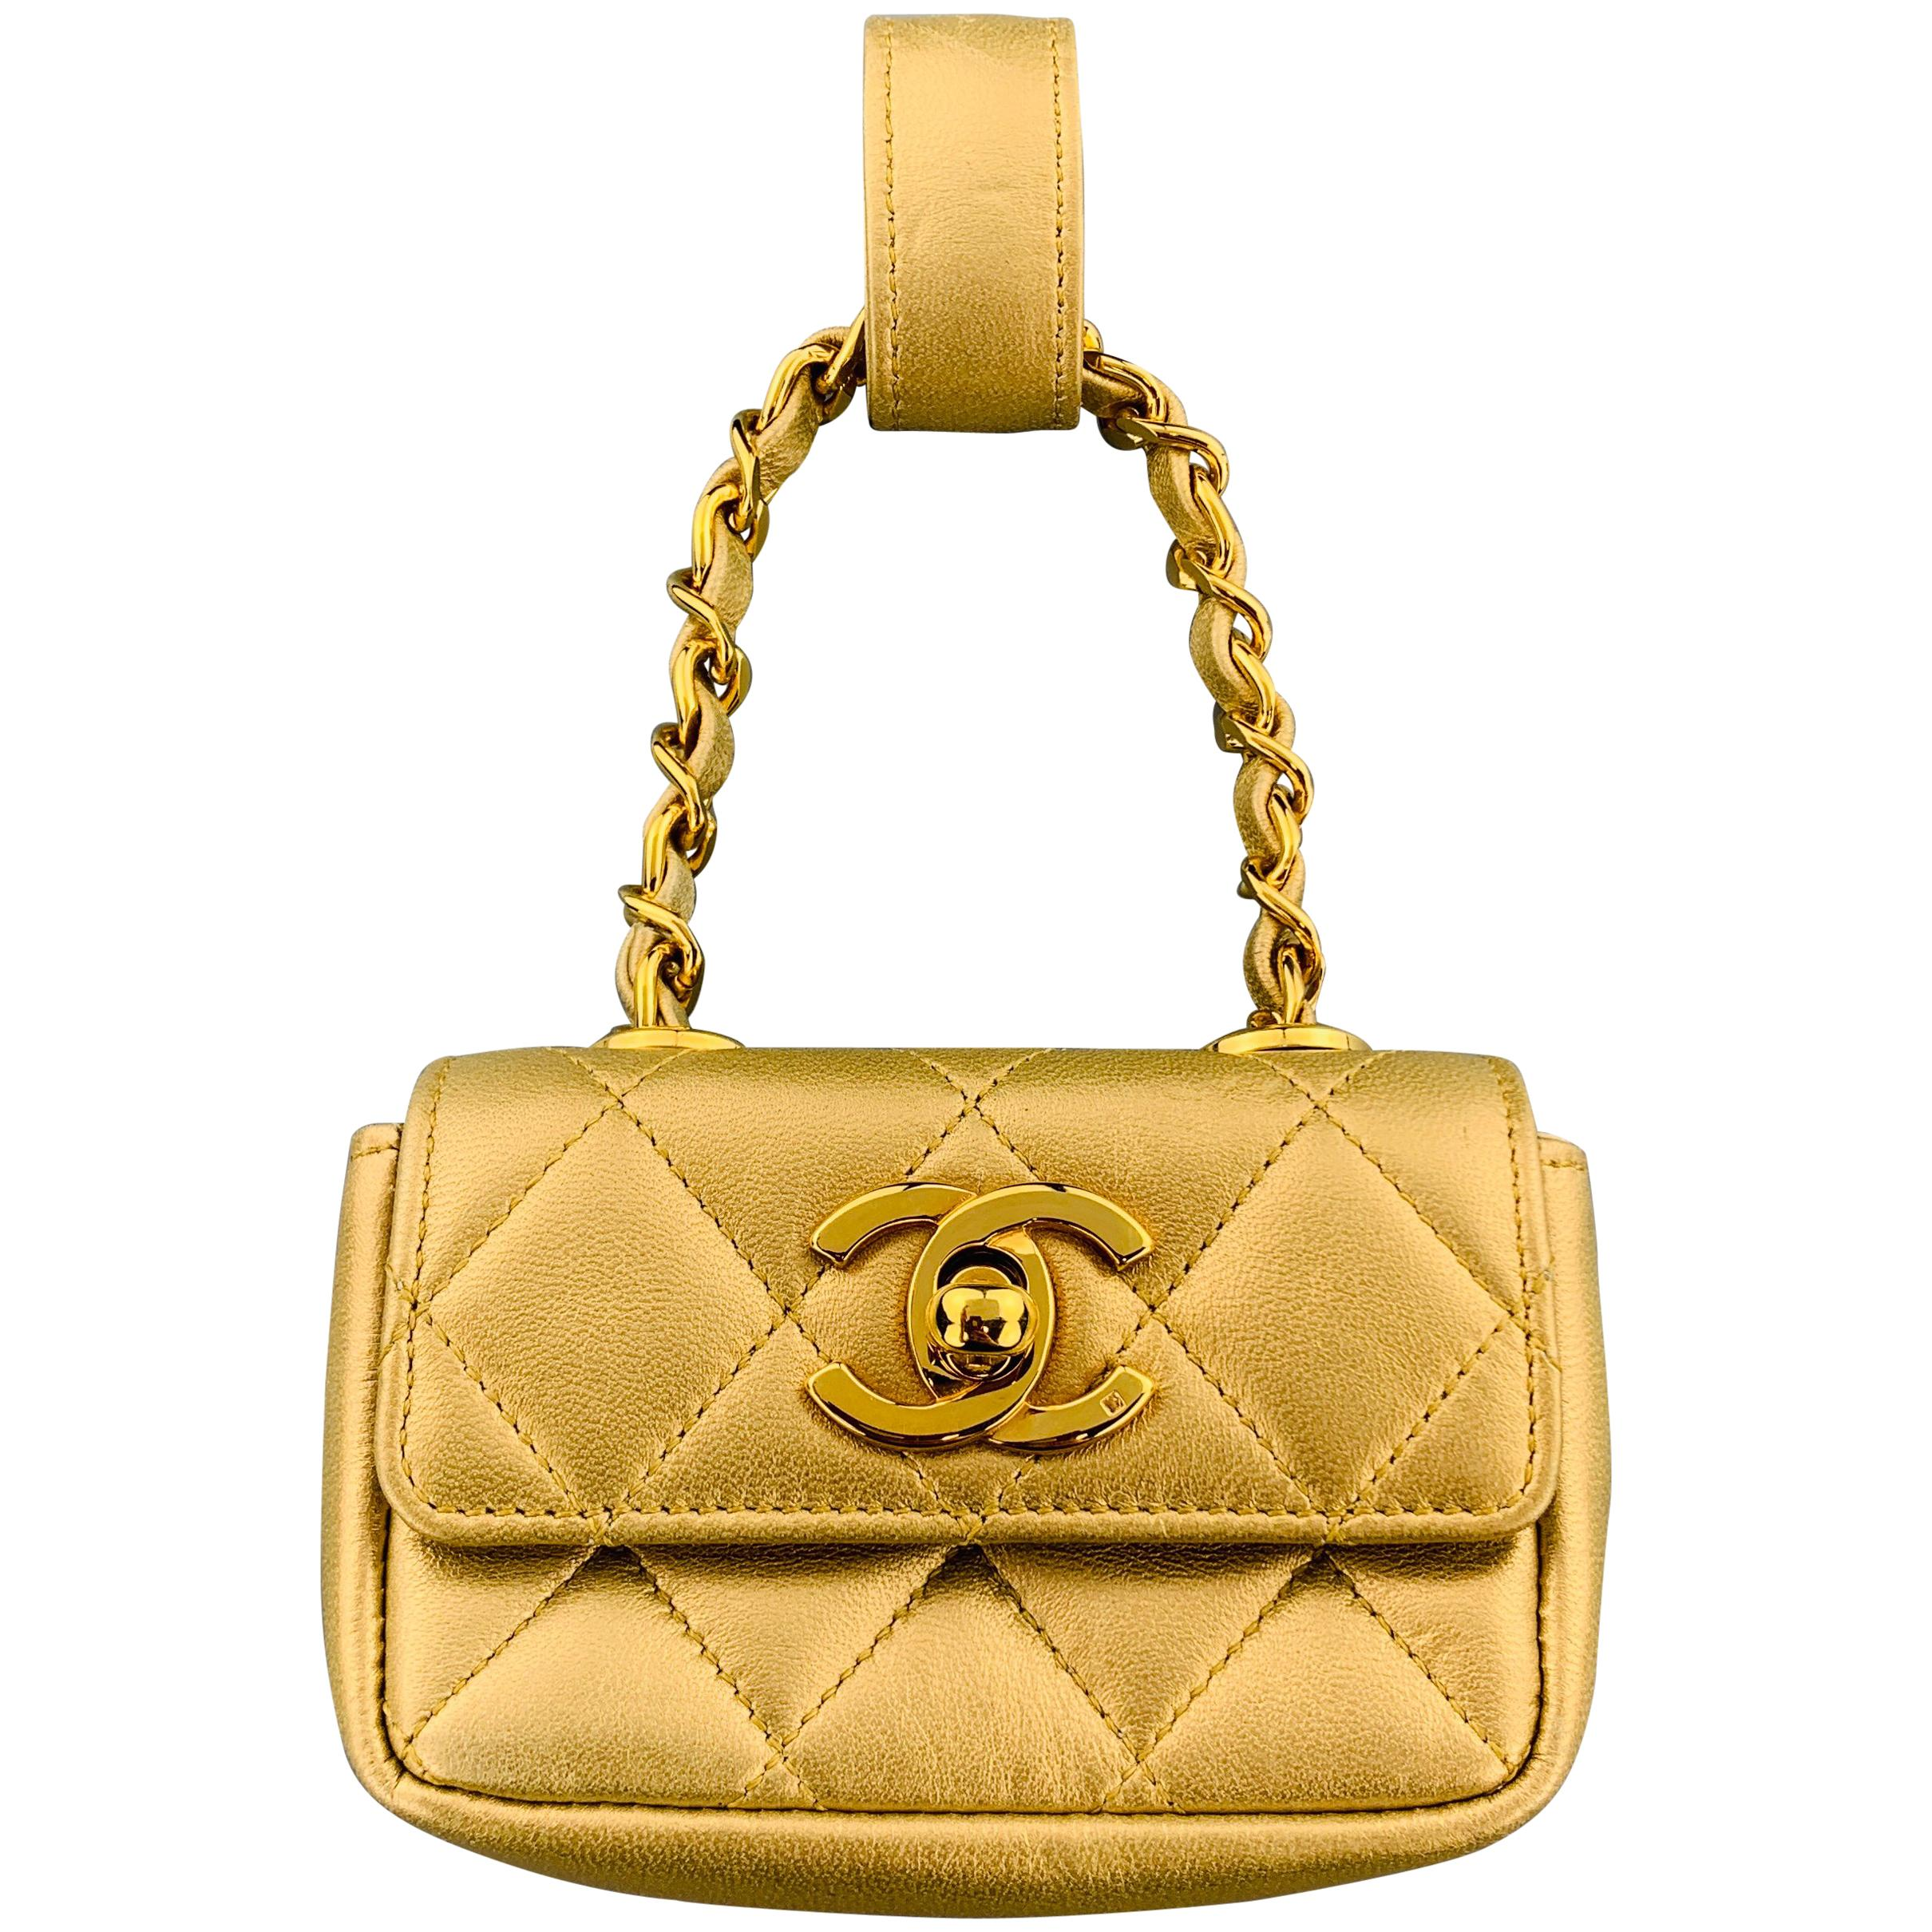 1b15b8fbe53b CHANEL Vintage Gold Metallic Leather Quilted Mini Purse Charm Pouch at  1stdibs